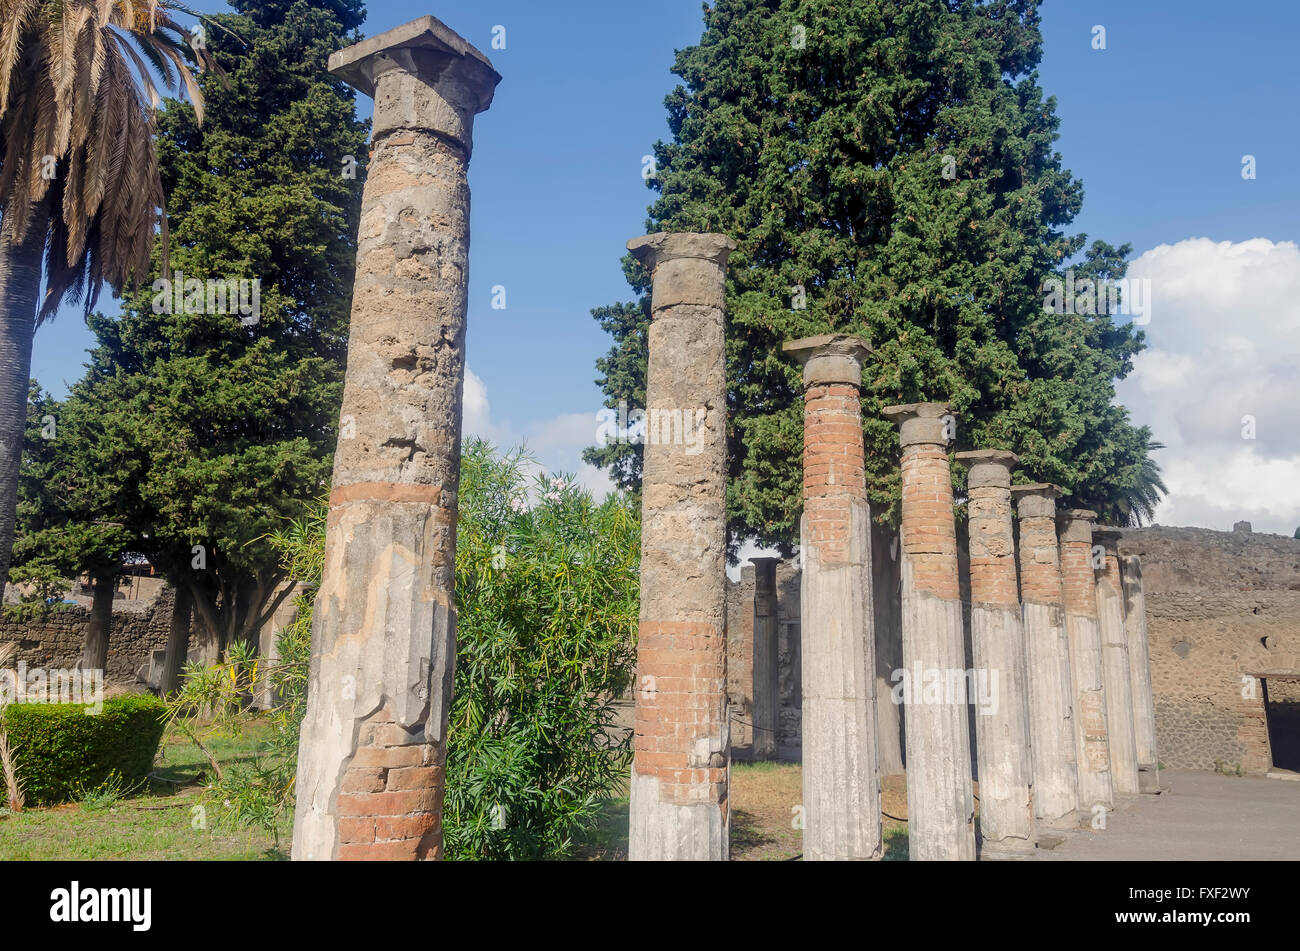 Standing Roman Columns Or Pillars In Garden Of House Of The Faun